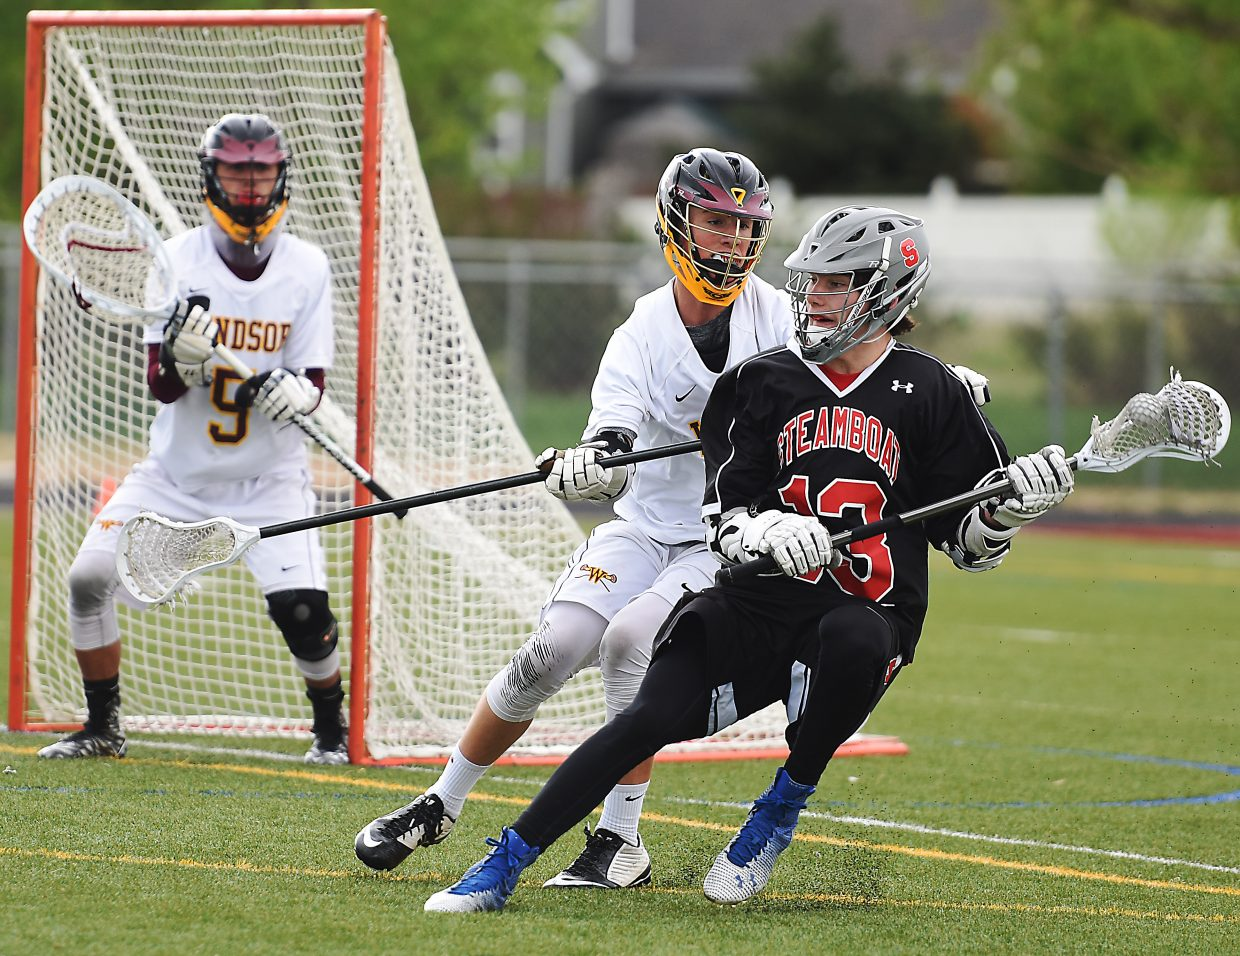 Steamboat's Willy Gunn tries to get to the goal Wednesday during the lacrosse state playoffs in Windsor.